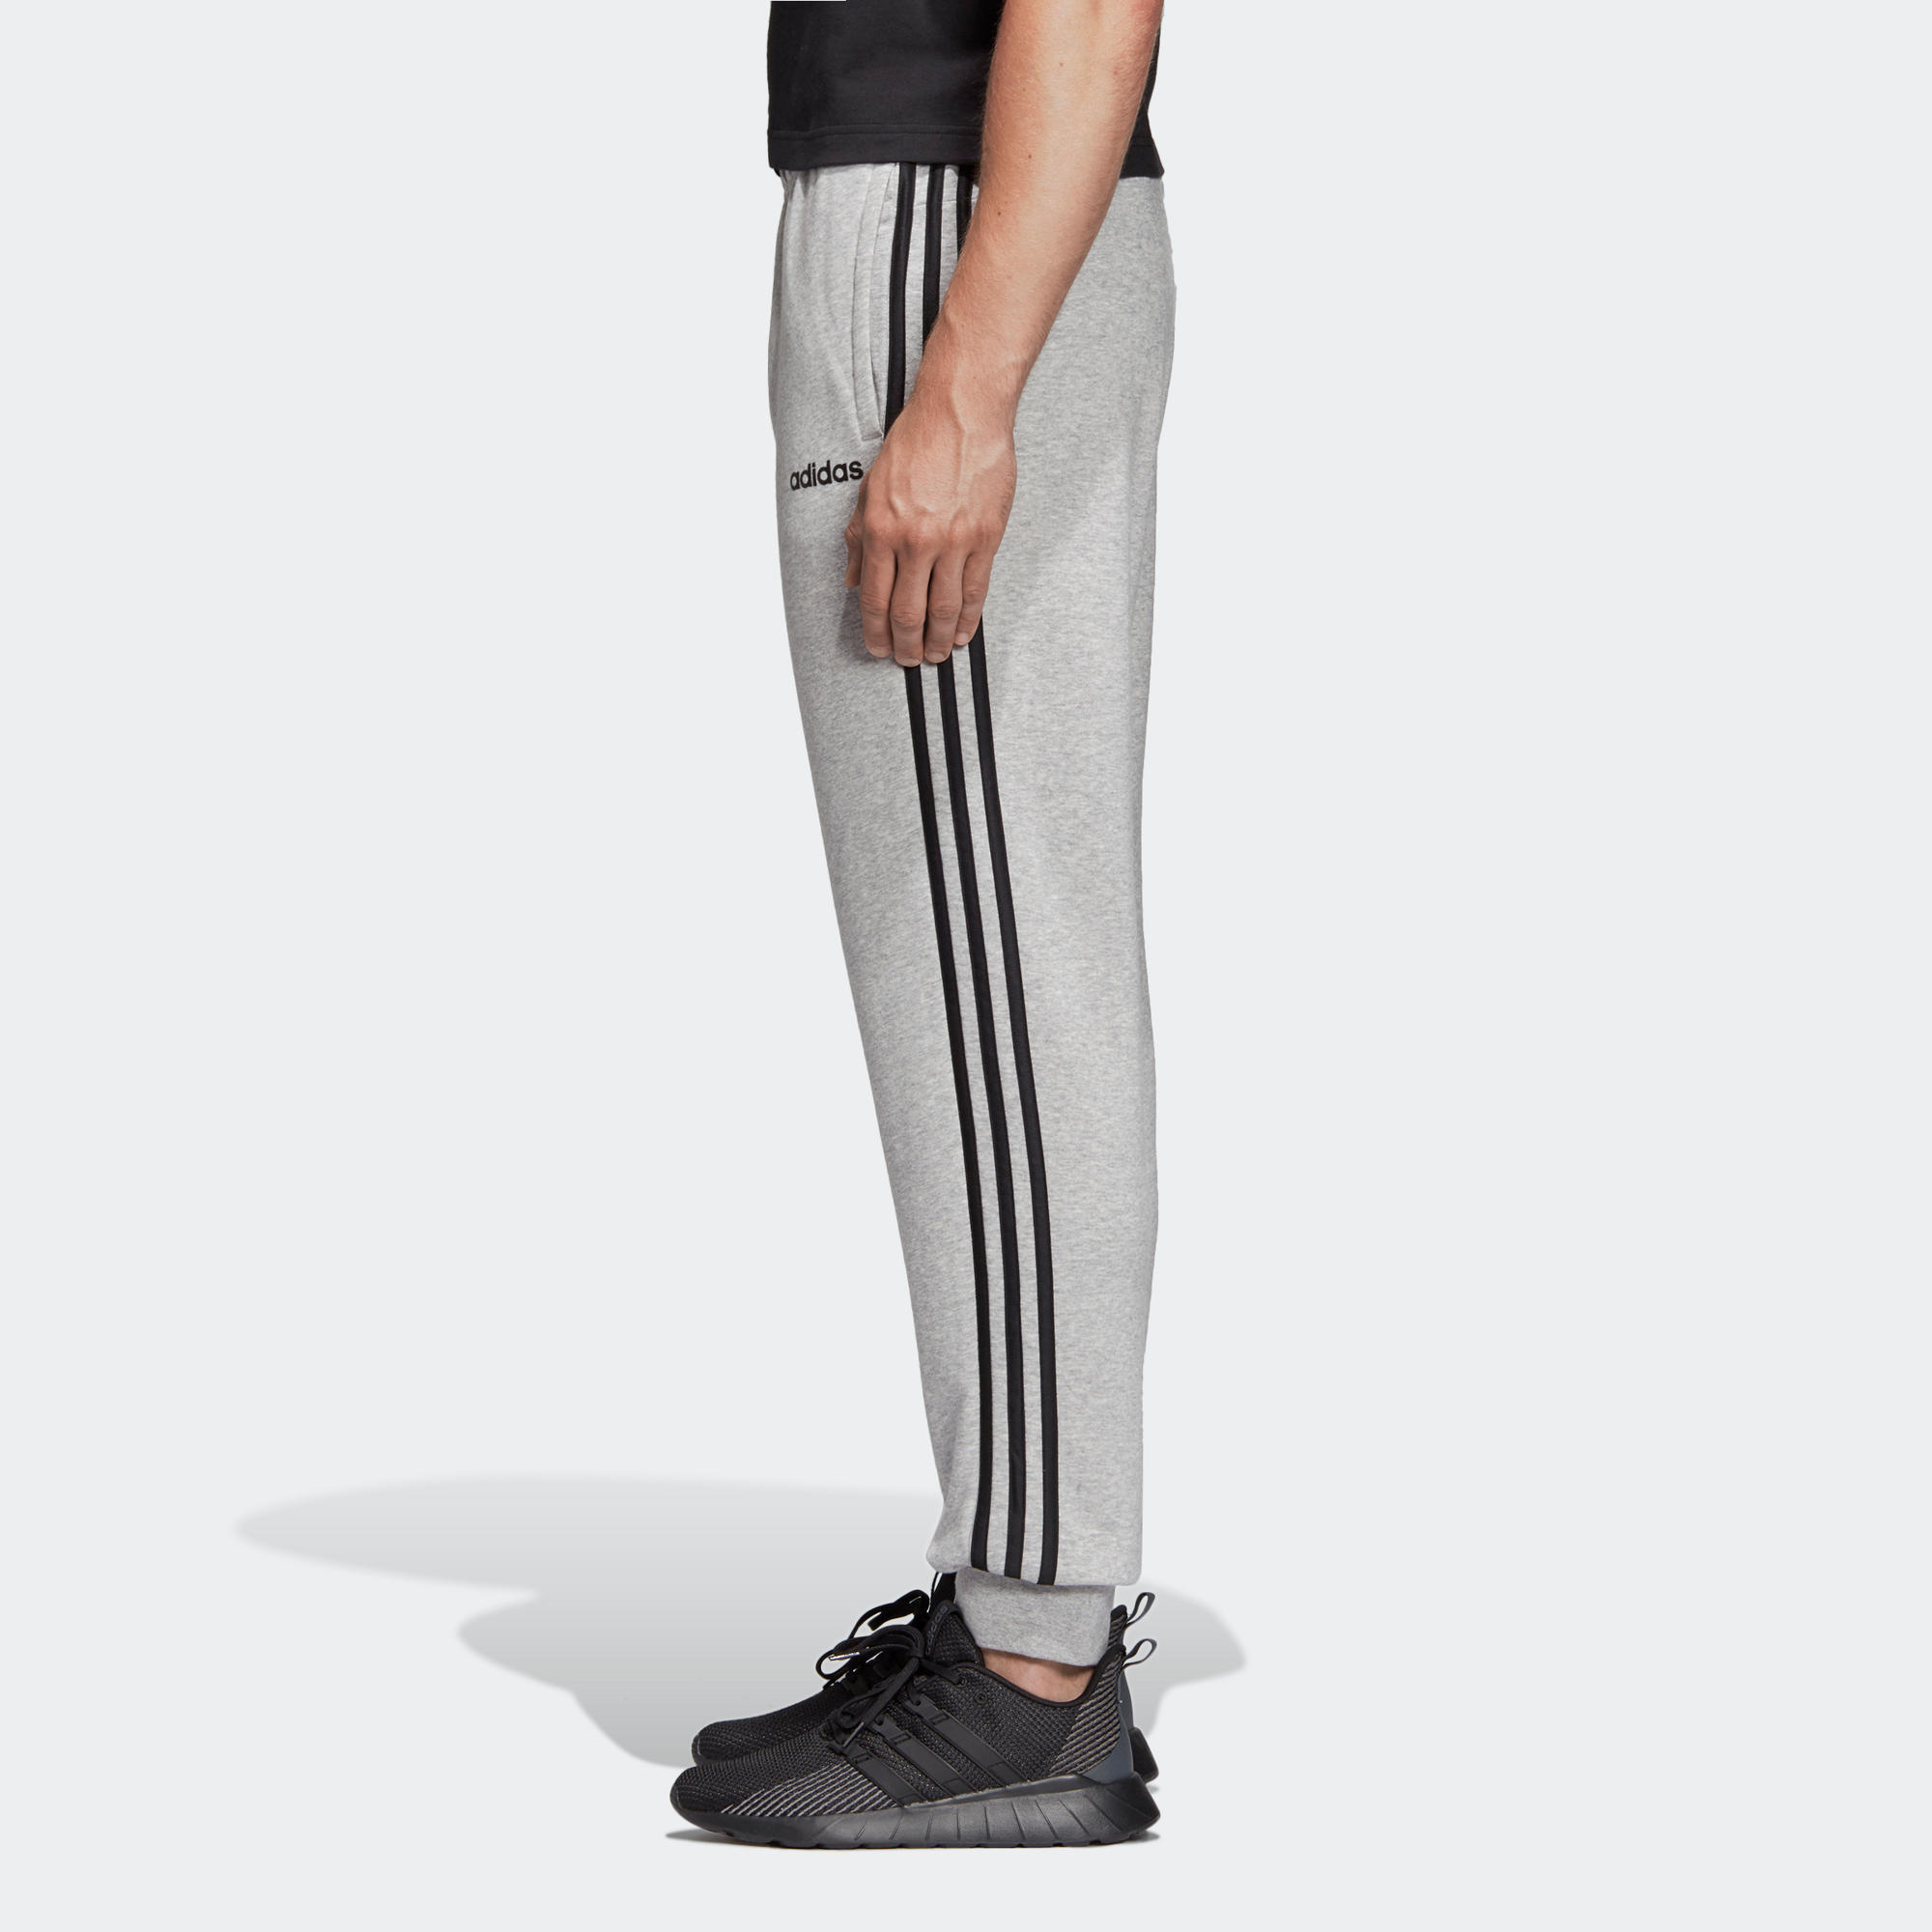 pantalon survetement homme adidas gris